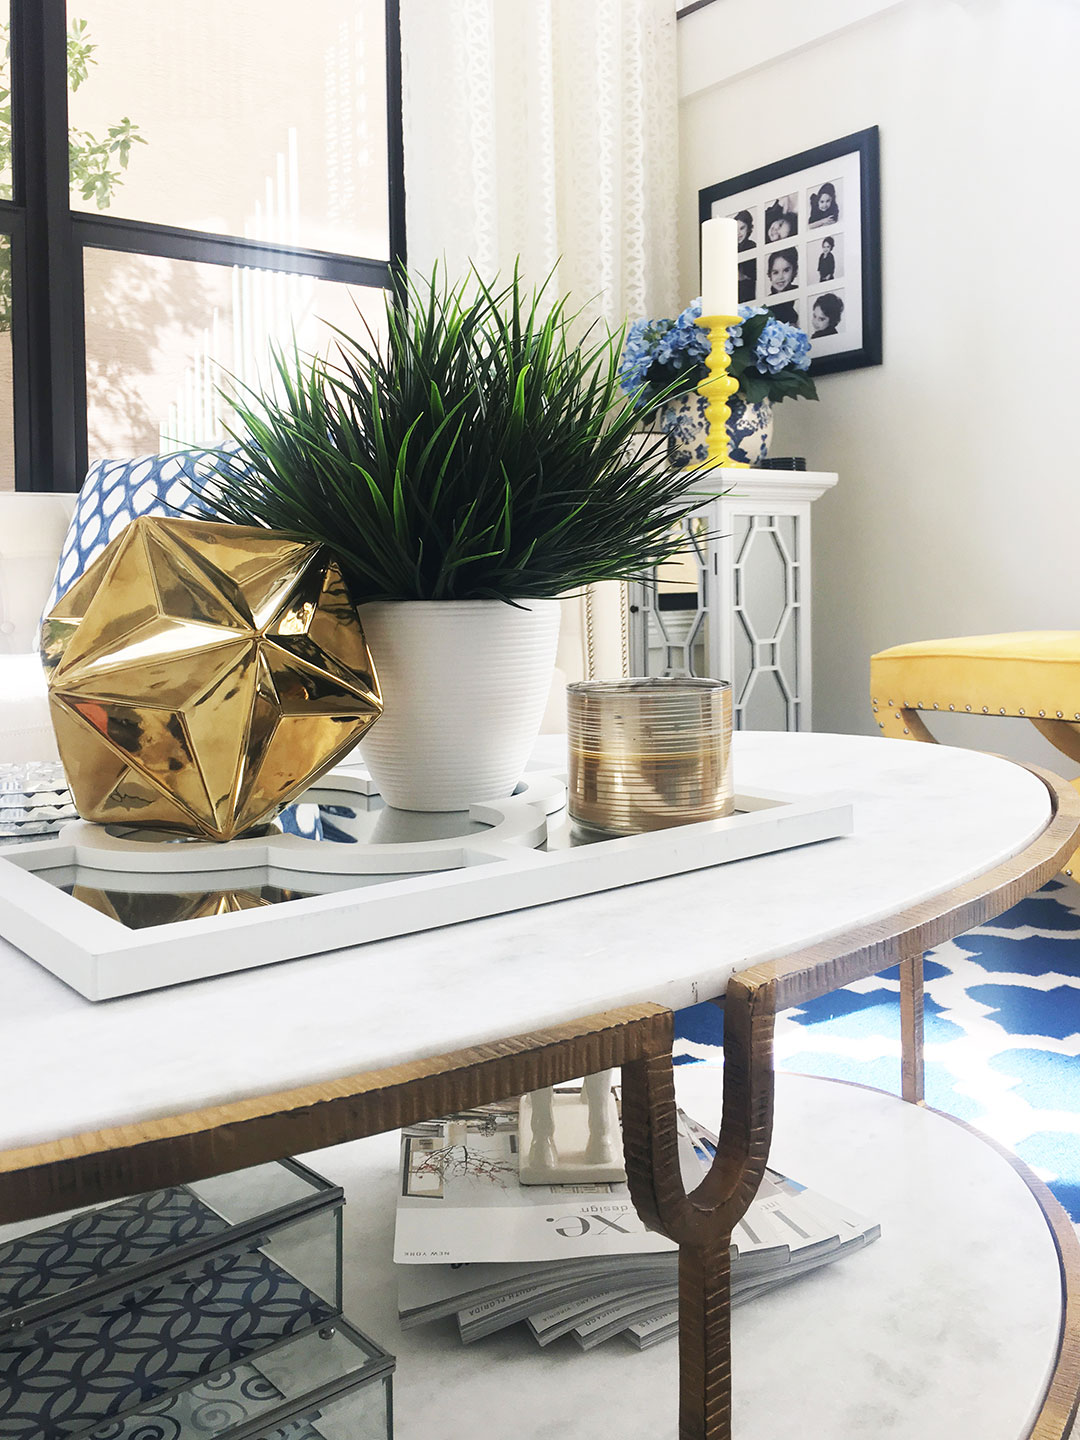 marble-cofee-table-gold-accents-blue-rug2